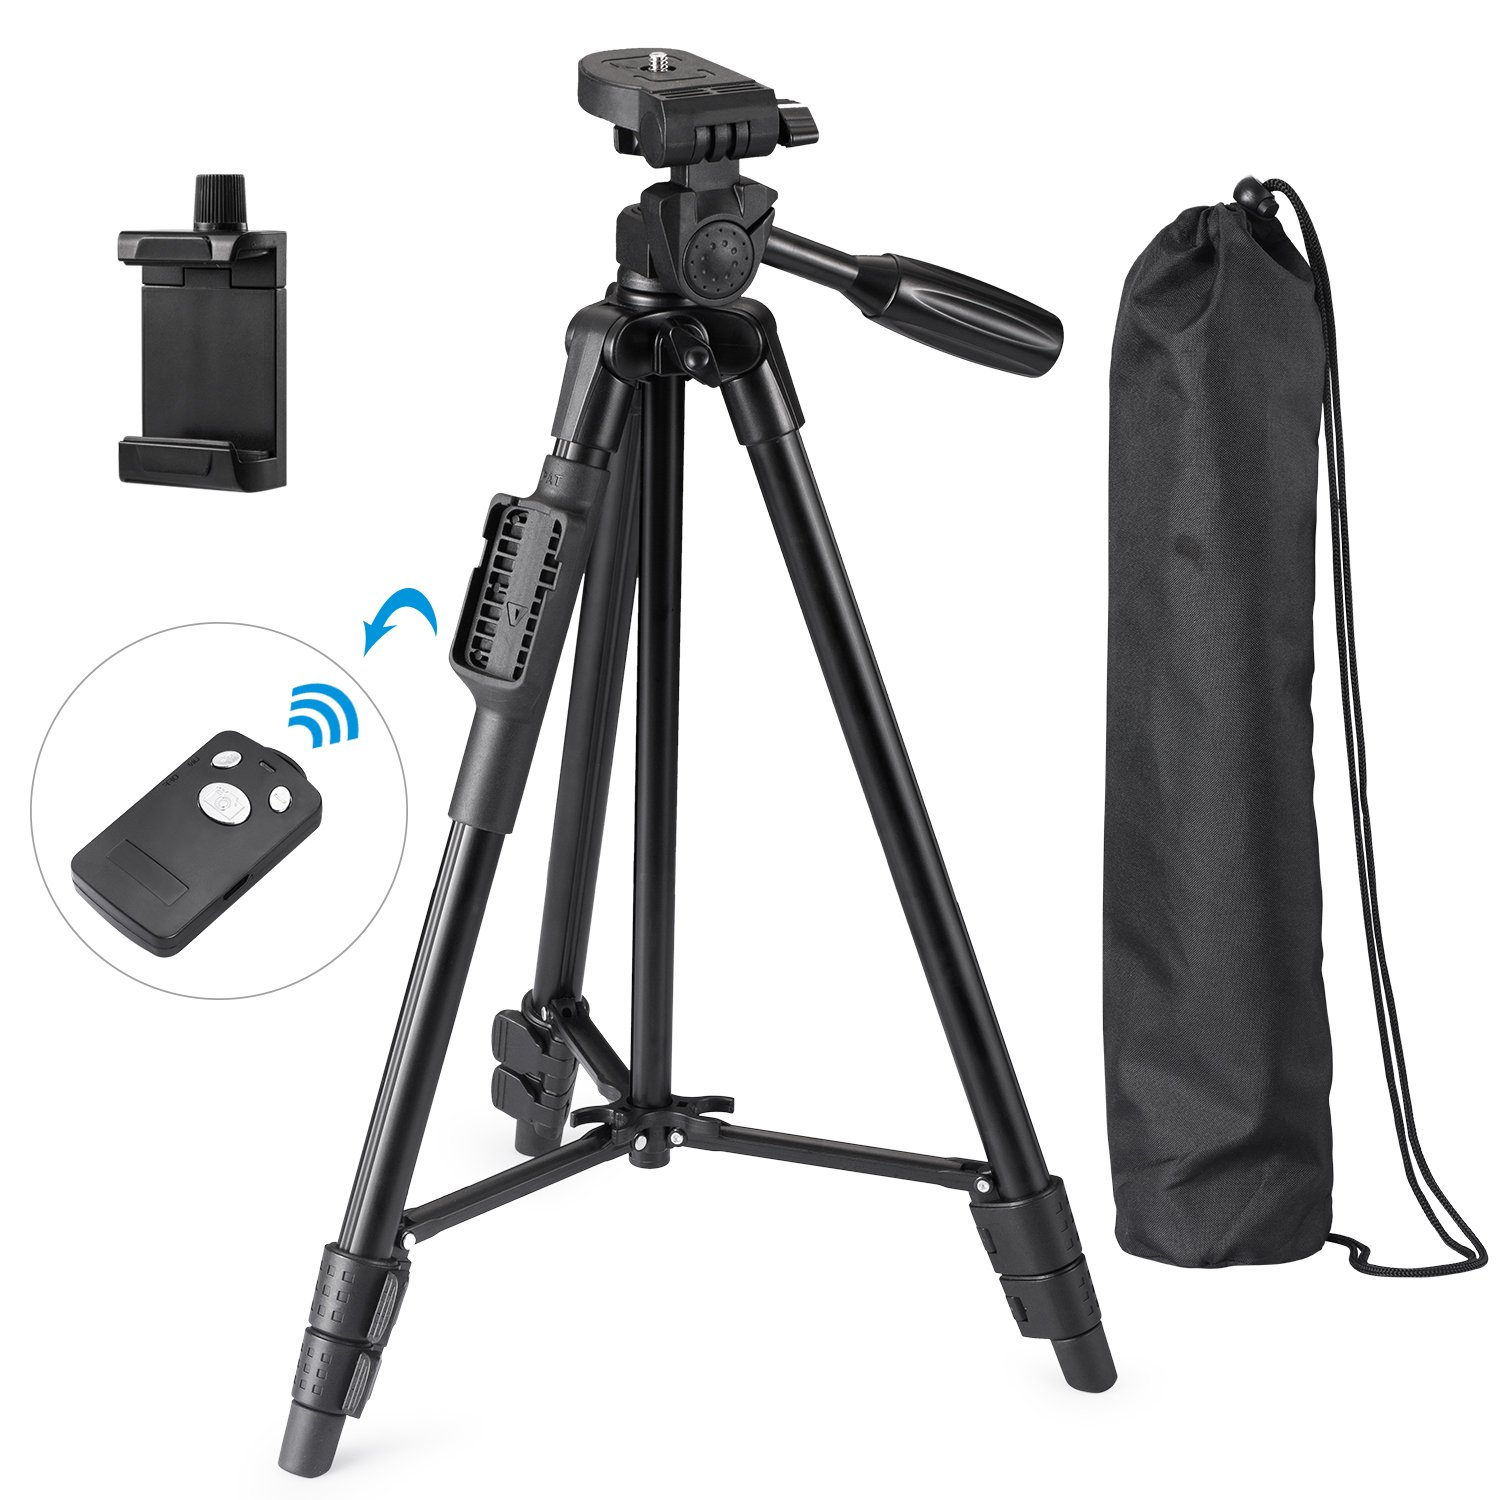 Eocean Tripod, 50 Inch Aluminum Tripod, Video Tripod for Cellphone, Camera, Universal Tripod with Wireless Remote, Compatible with iPhone Xs/Xr/X/8/8 Plus/Samsung Galaxy/Google/GoPro Hero